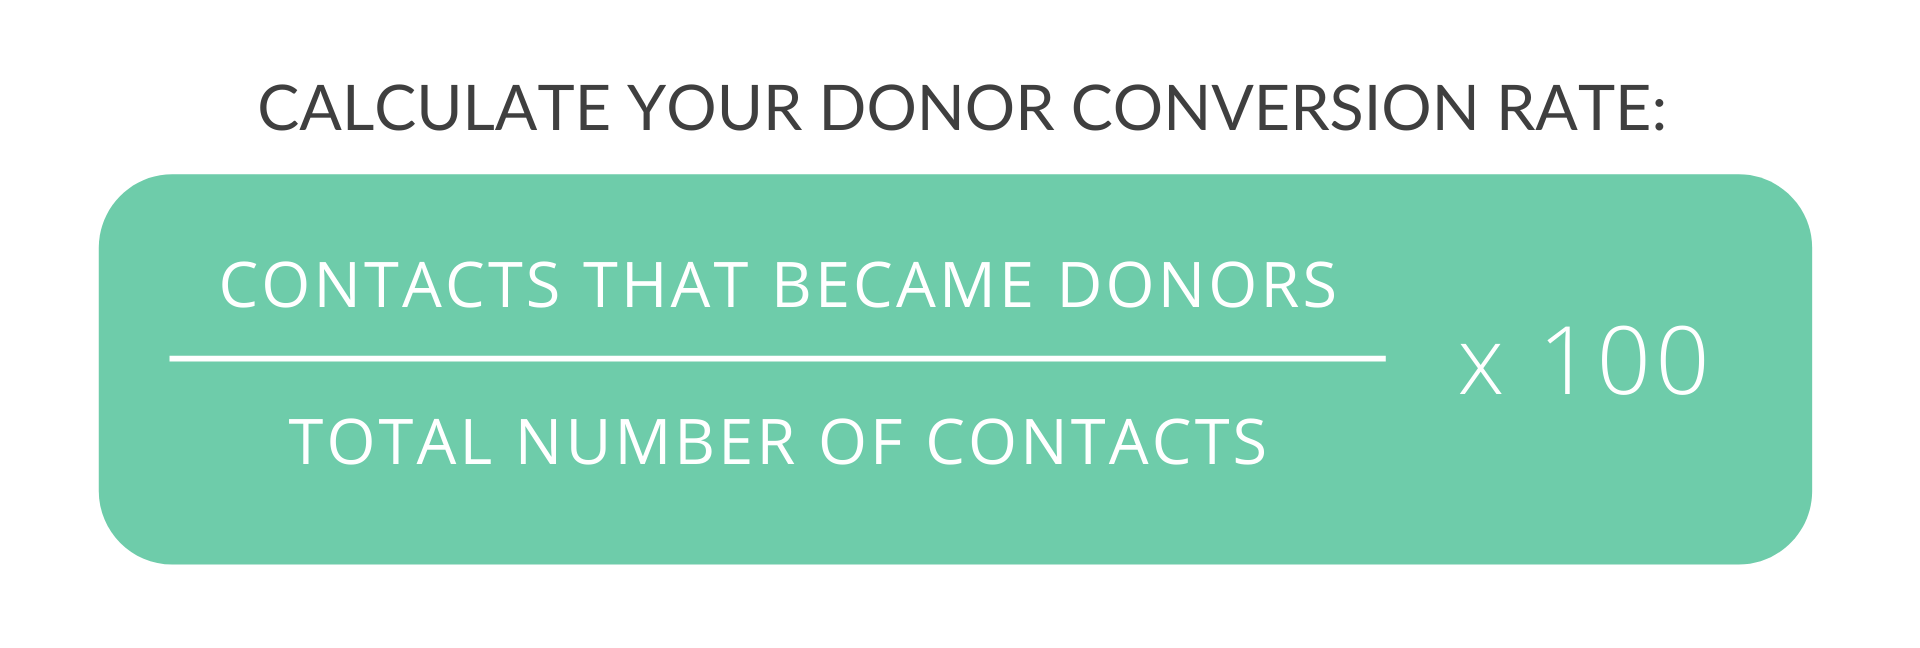 formula to calculate donor conversion rate